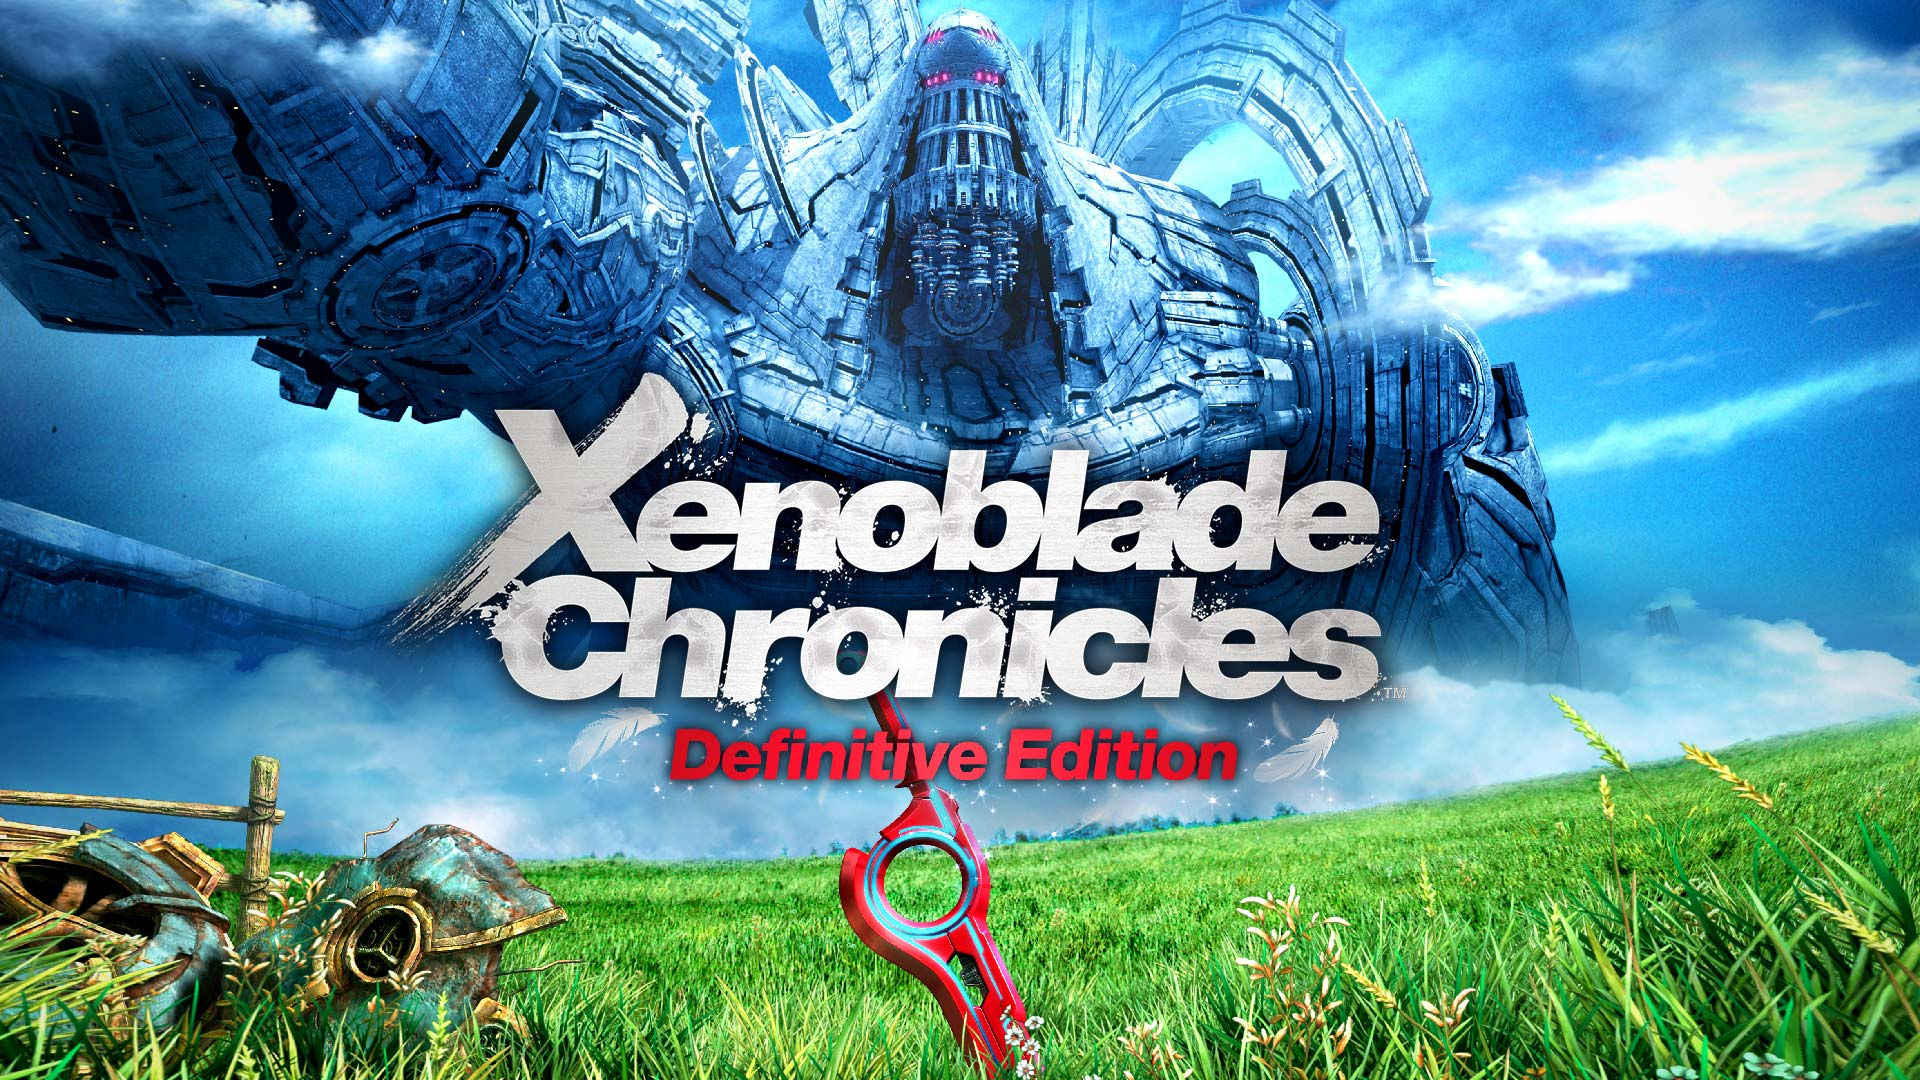 xenoblade chronicles, party leader